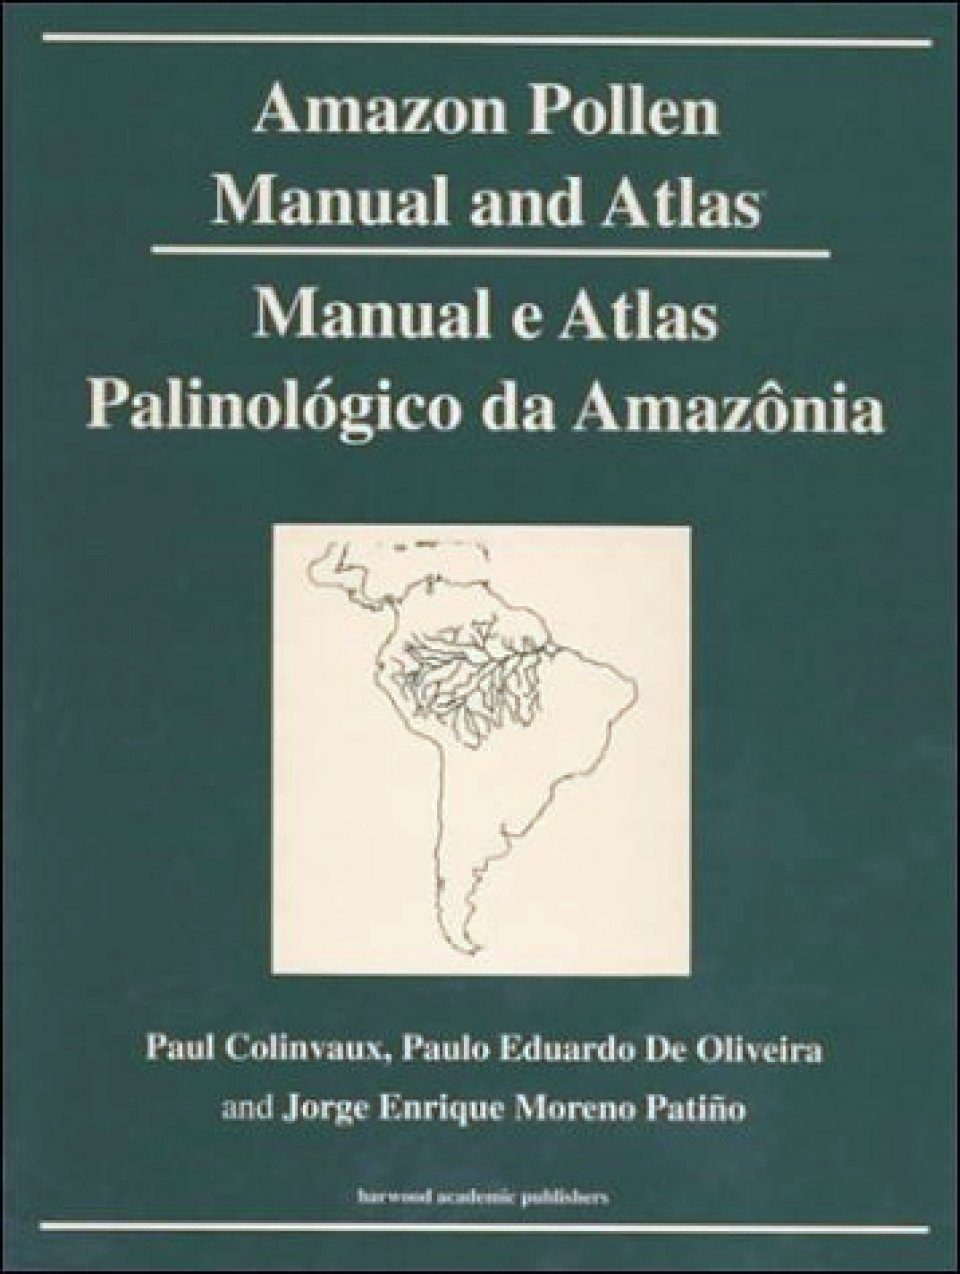 Amazon Pollen Manual and Atlas / Manual e Atlas Palinológico da Amazônia